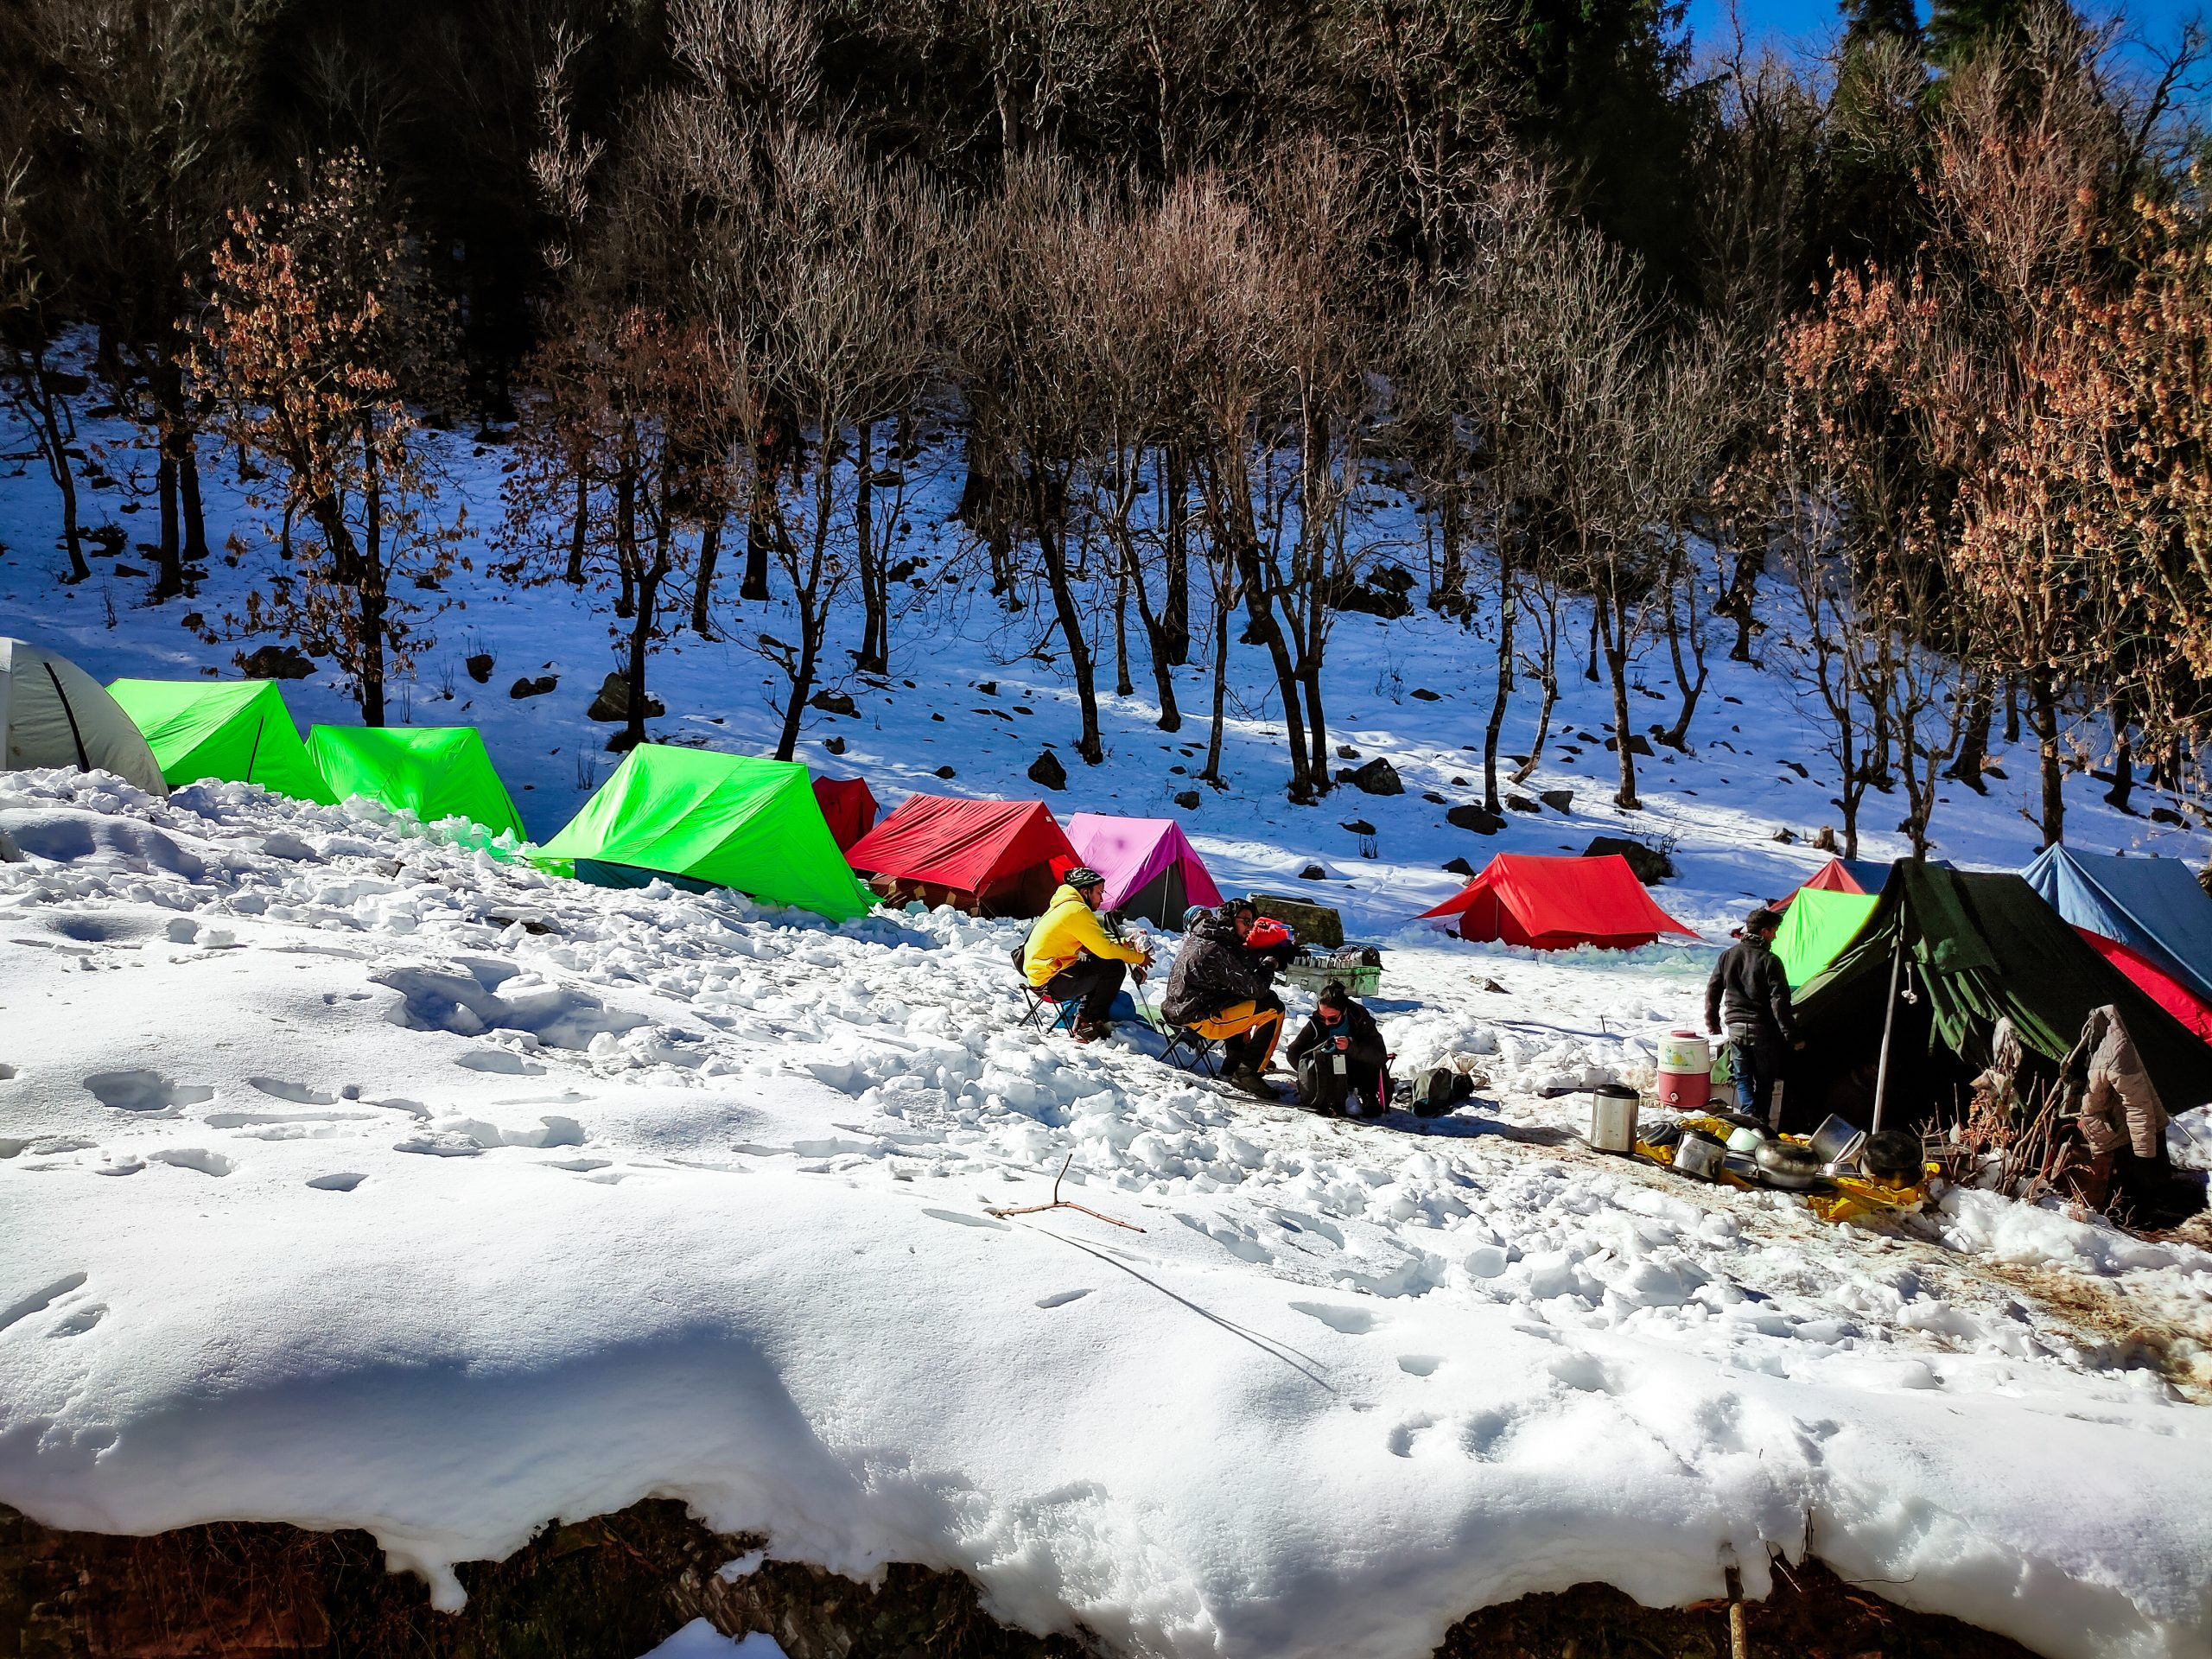 Camping in a snowy valley